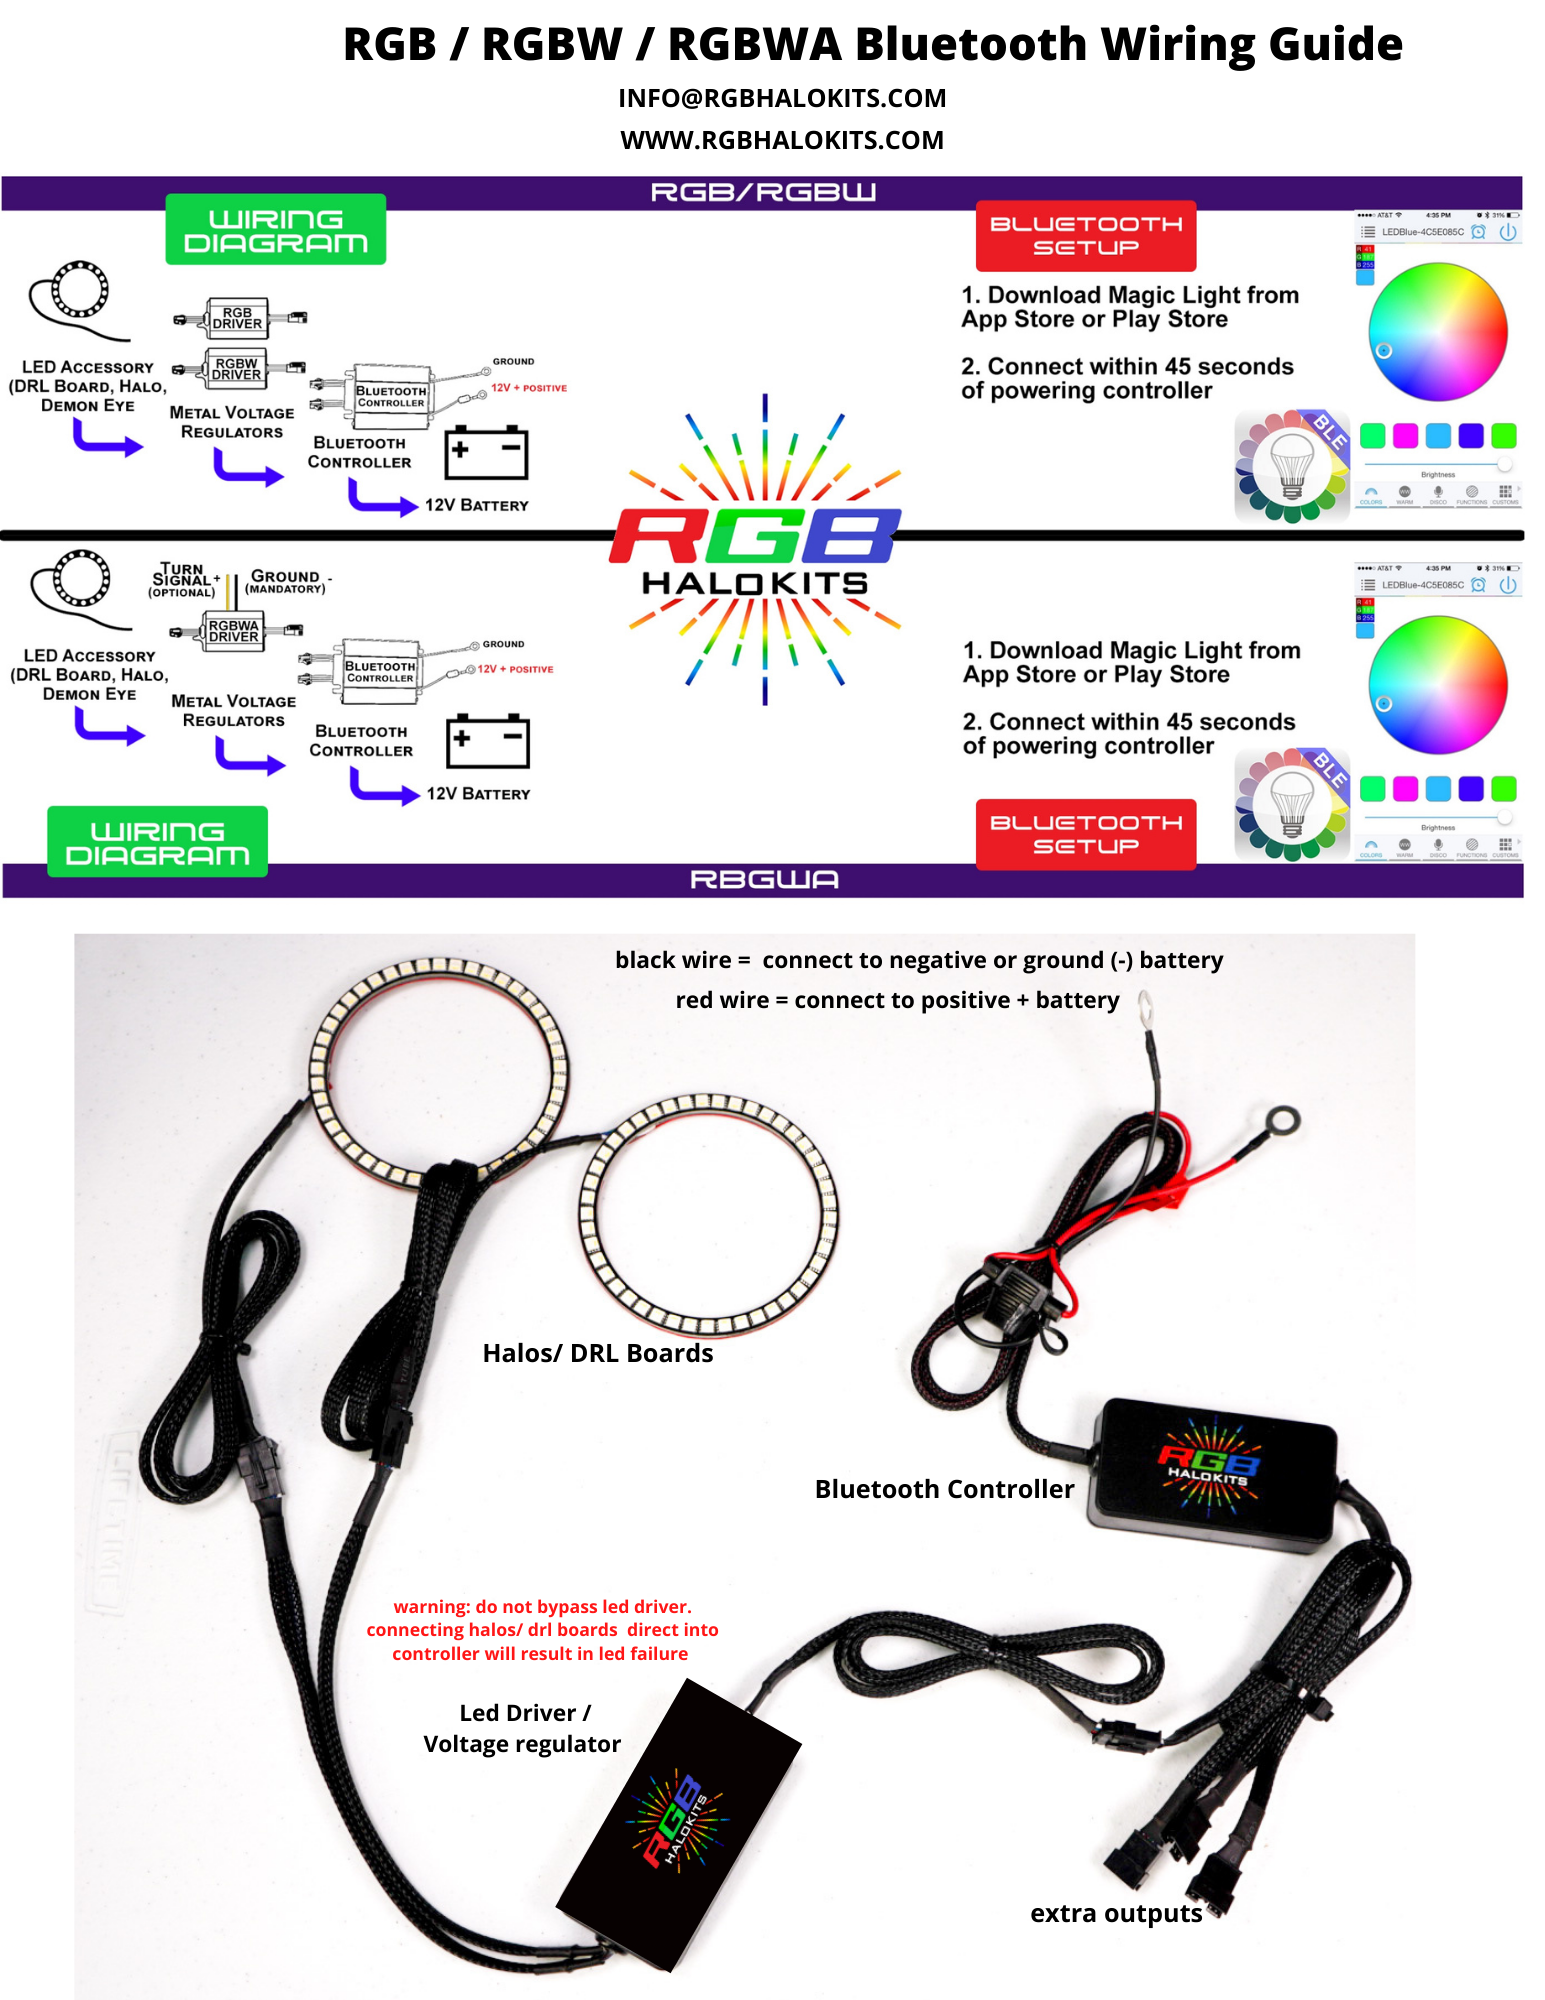 New_RGB_RGBW_bluetooth_Install_Guide_for_website_use.png